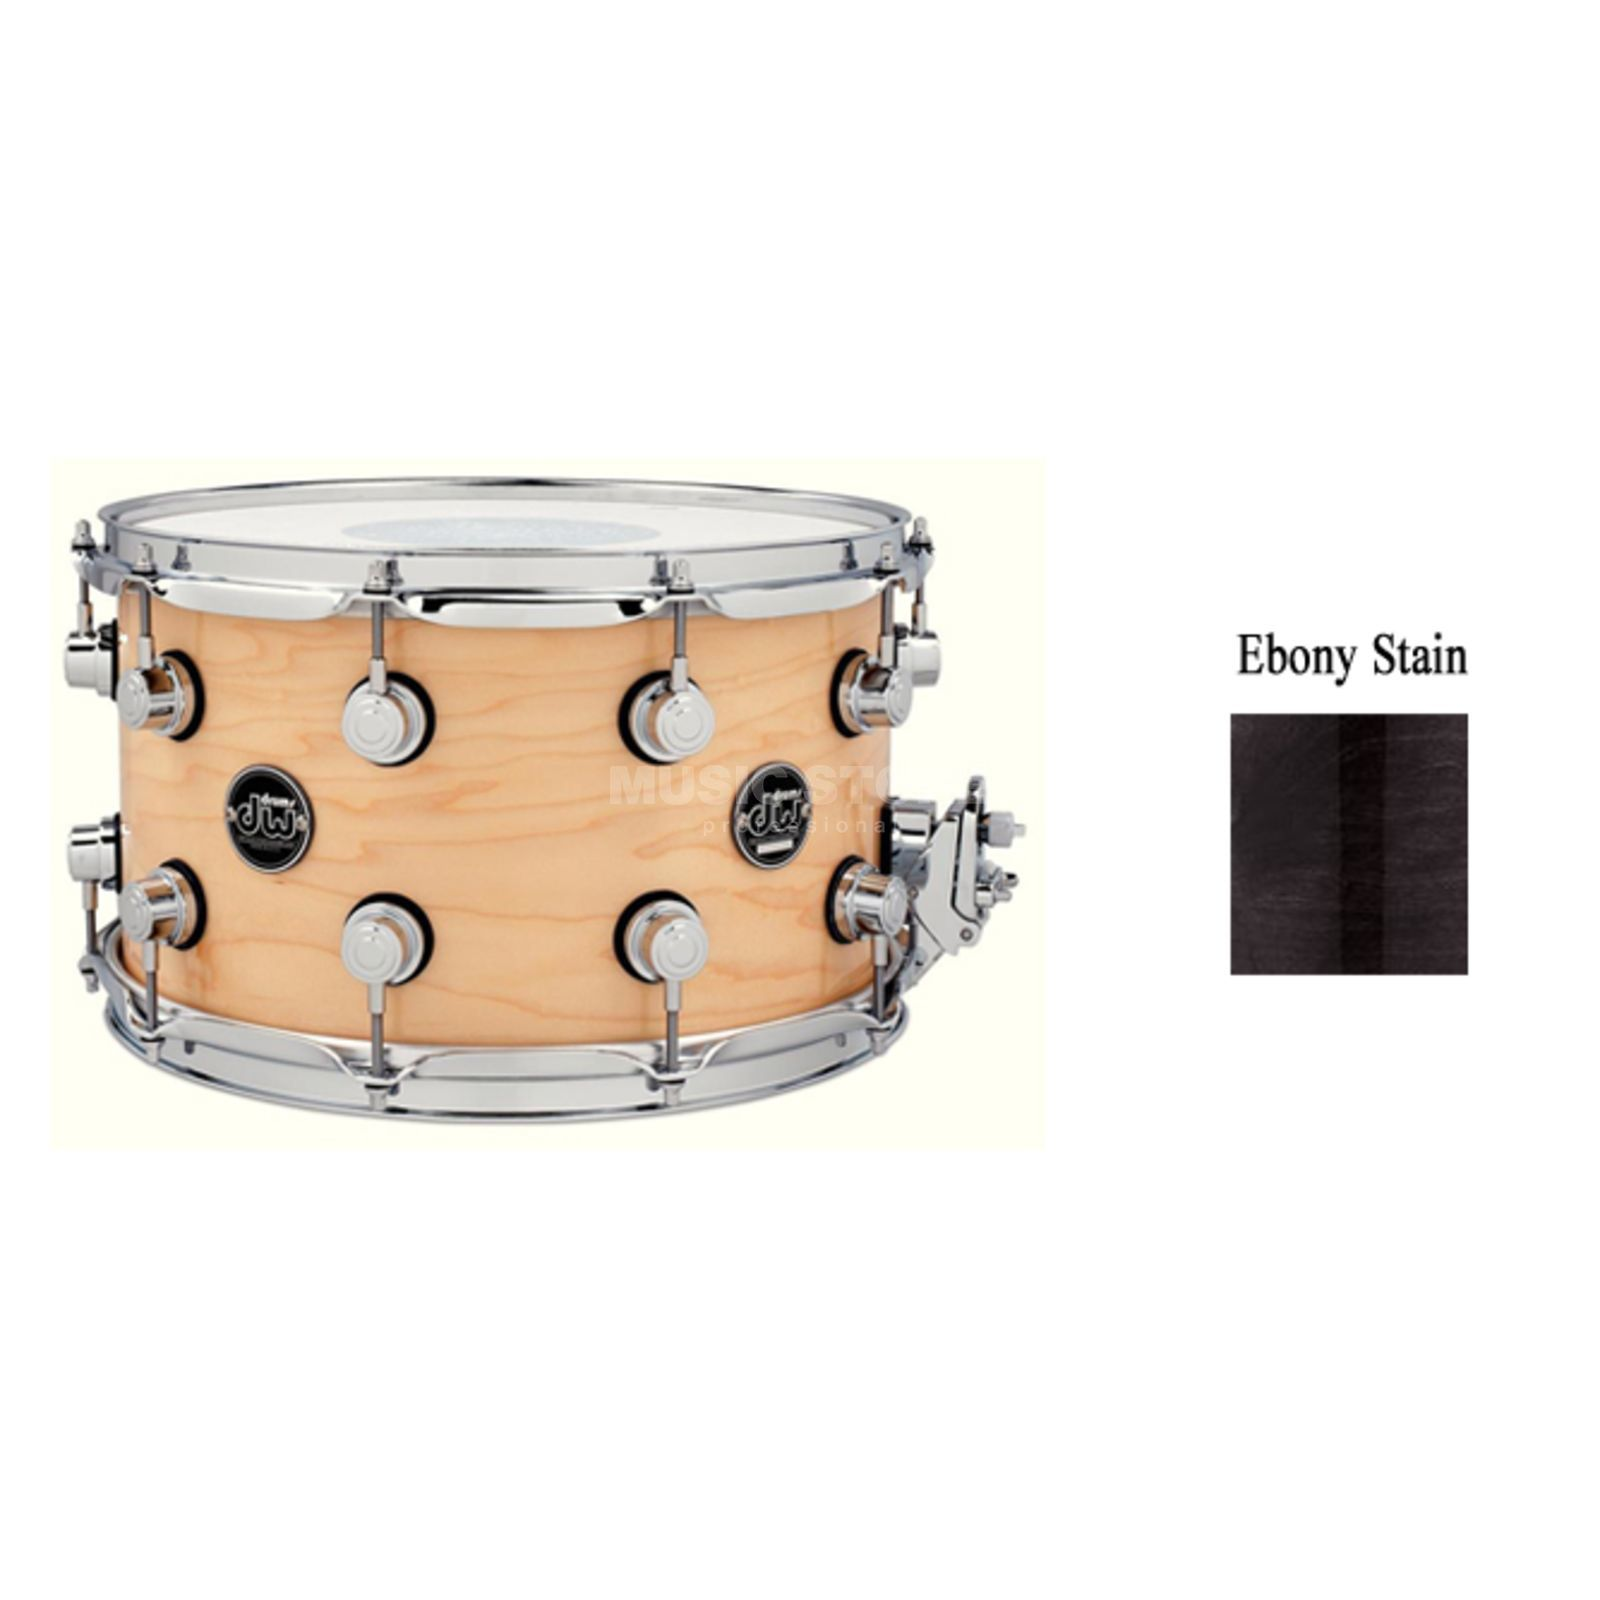 "Drum Workshop Performance Snare 13""x7"", Ebony Stain Produktbild"